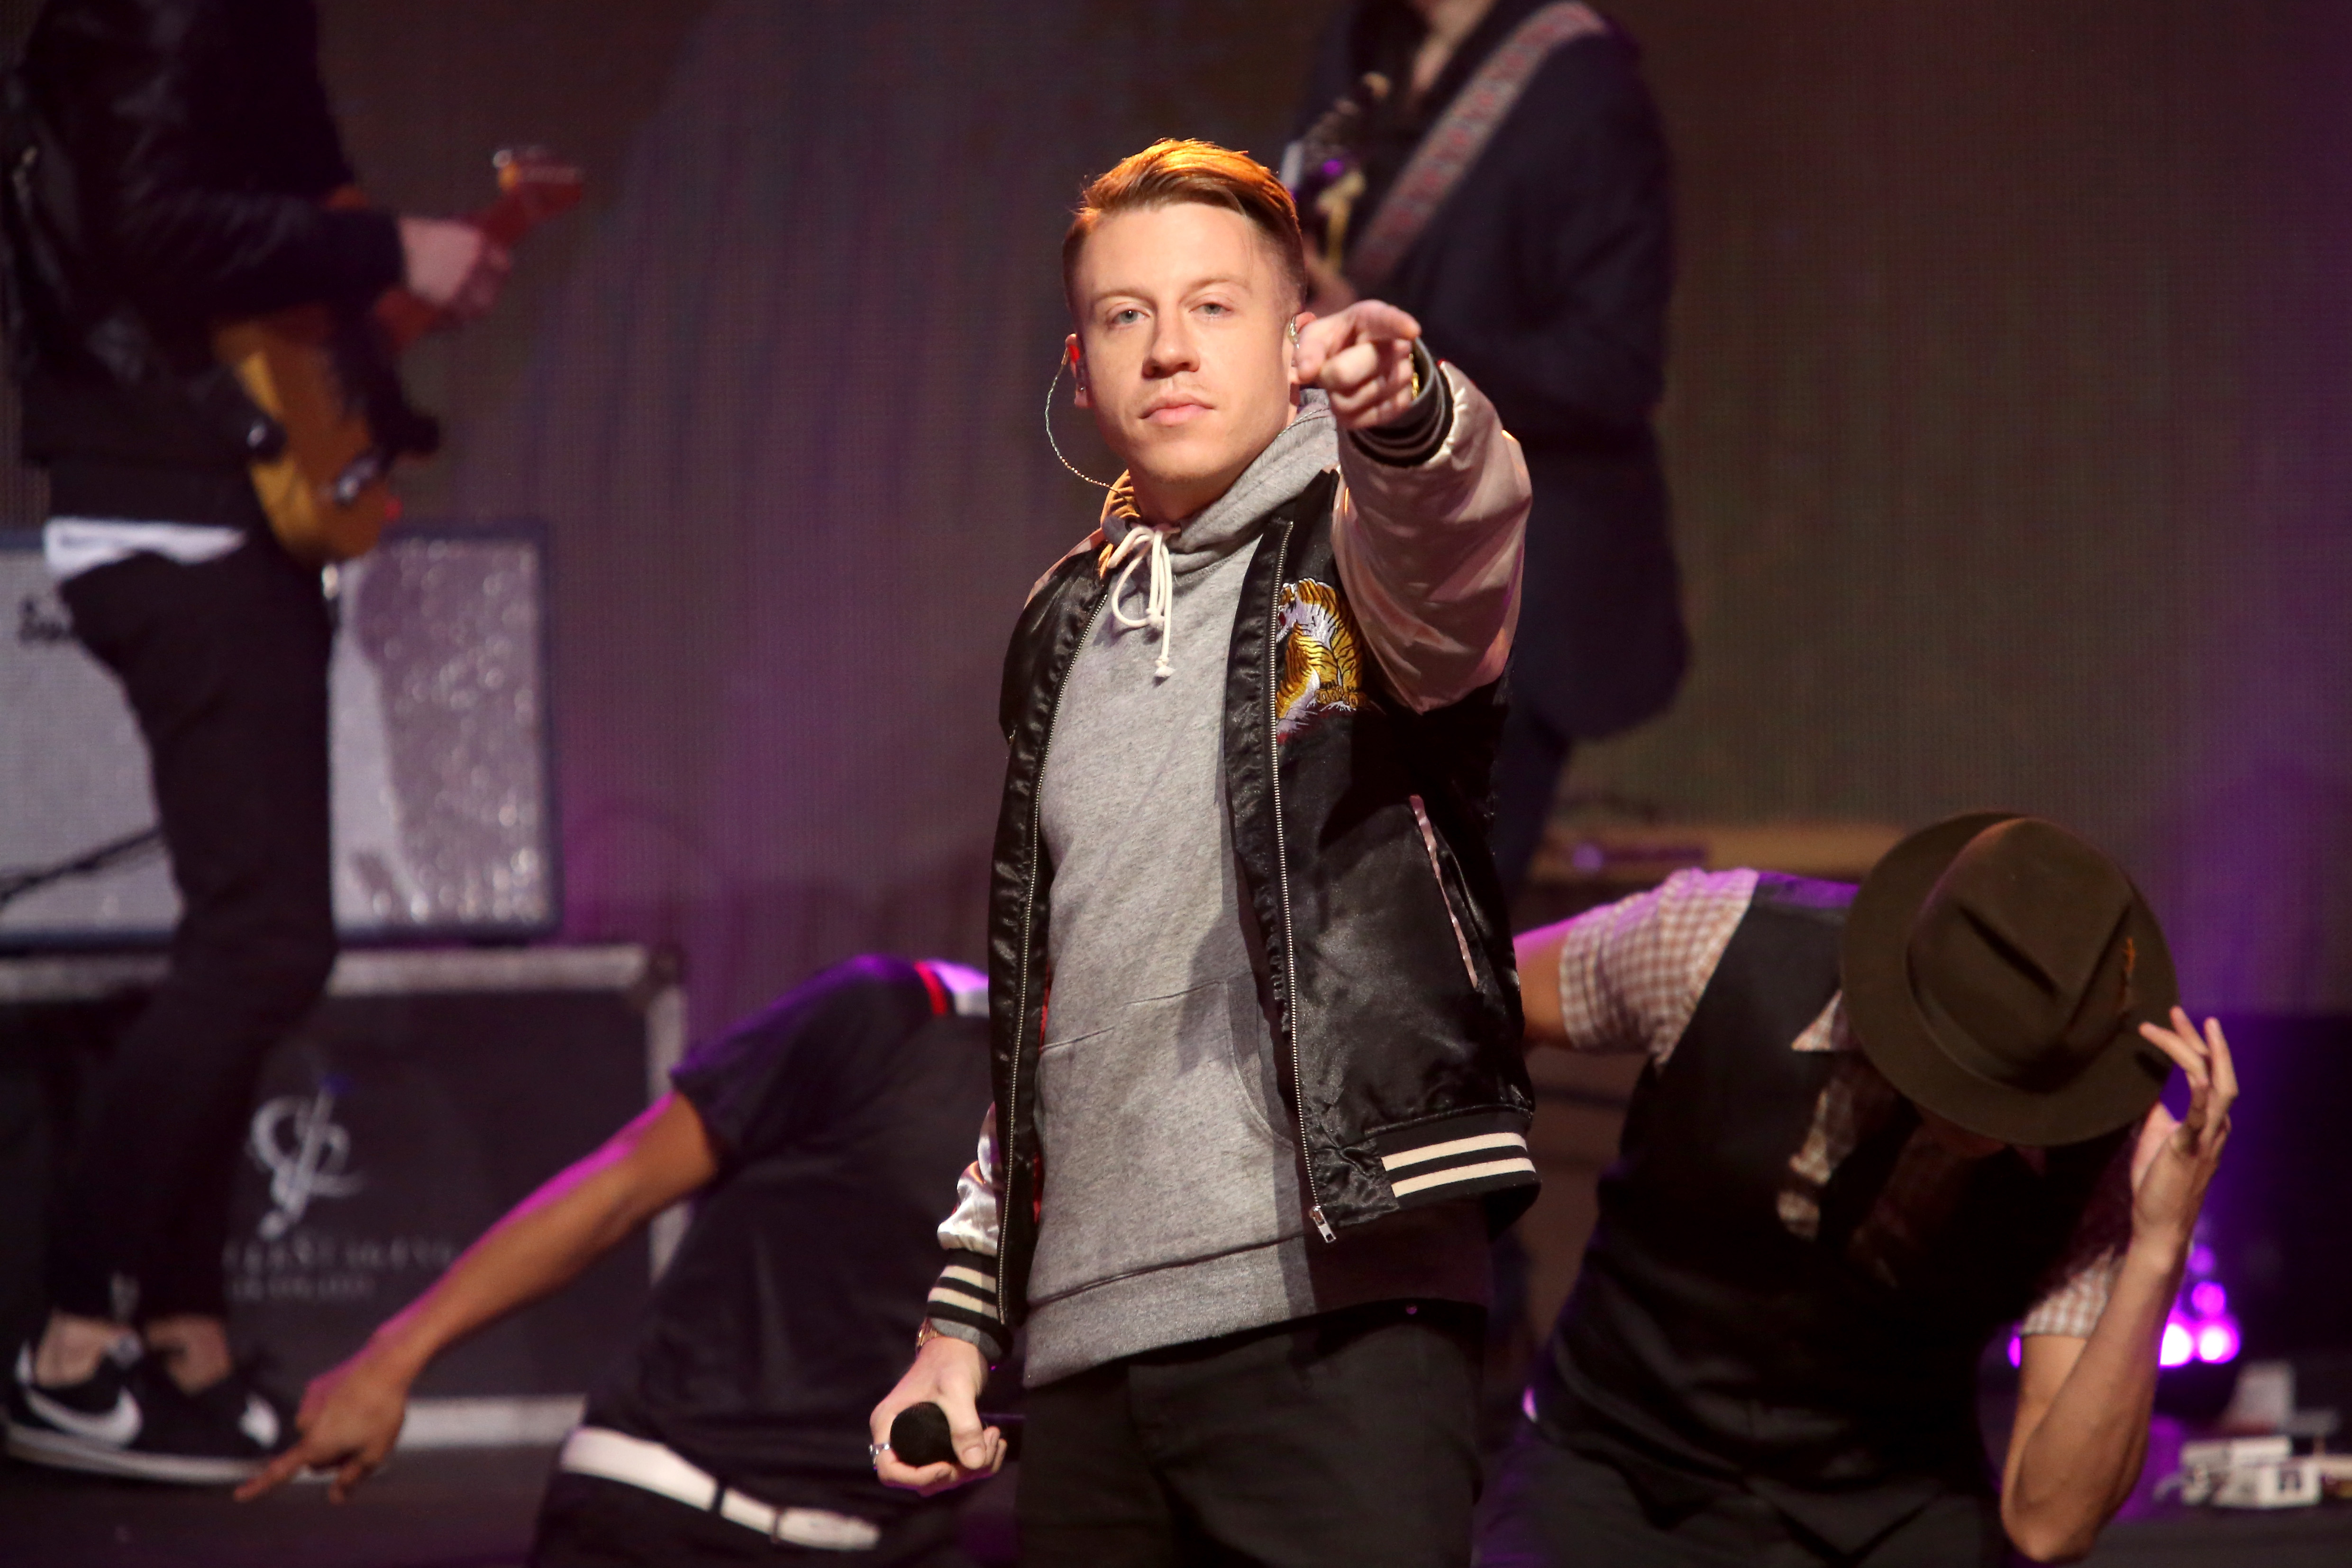 Macklemore performs onstage at Dick Clark's New Year's Rockin' Eve with Ryan Seacrest 2016 on December 31, 2015 in Los Angeles, CA.